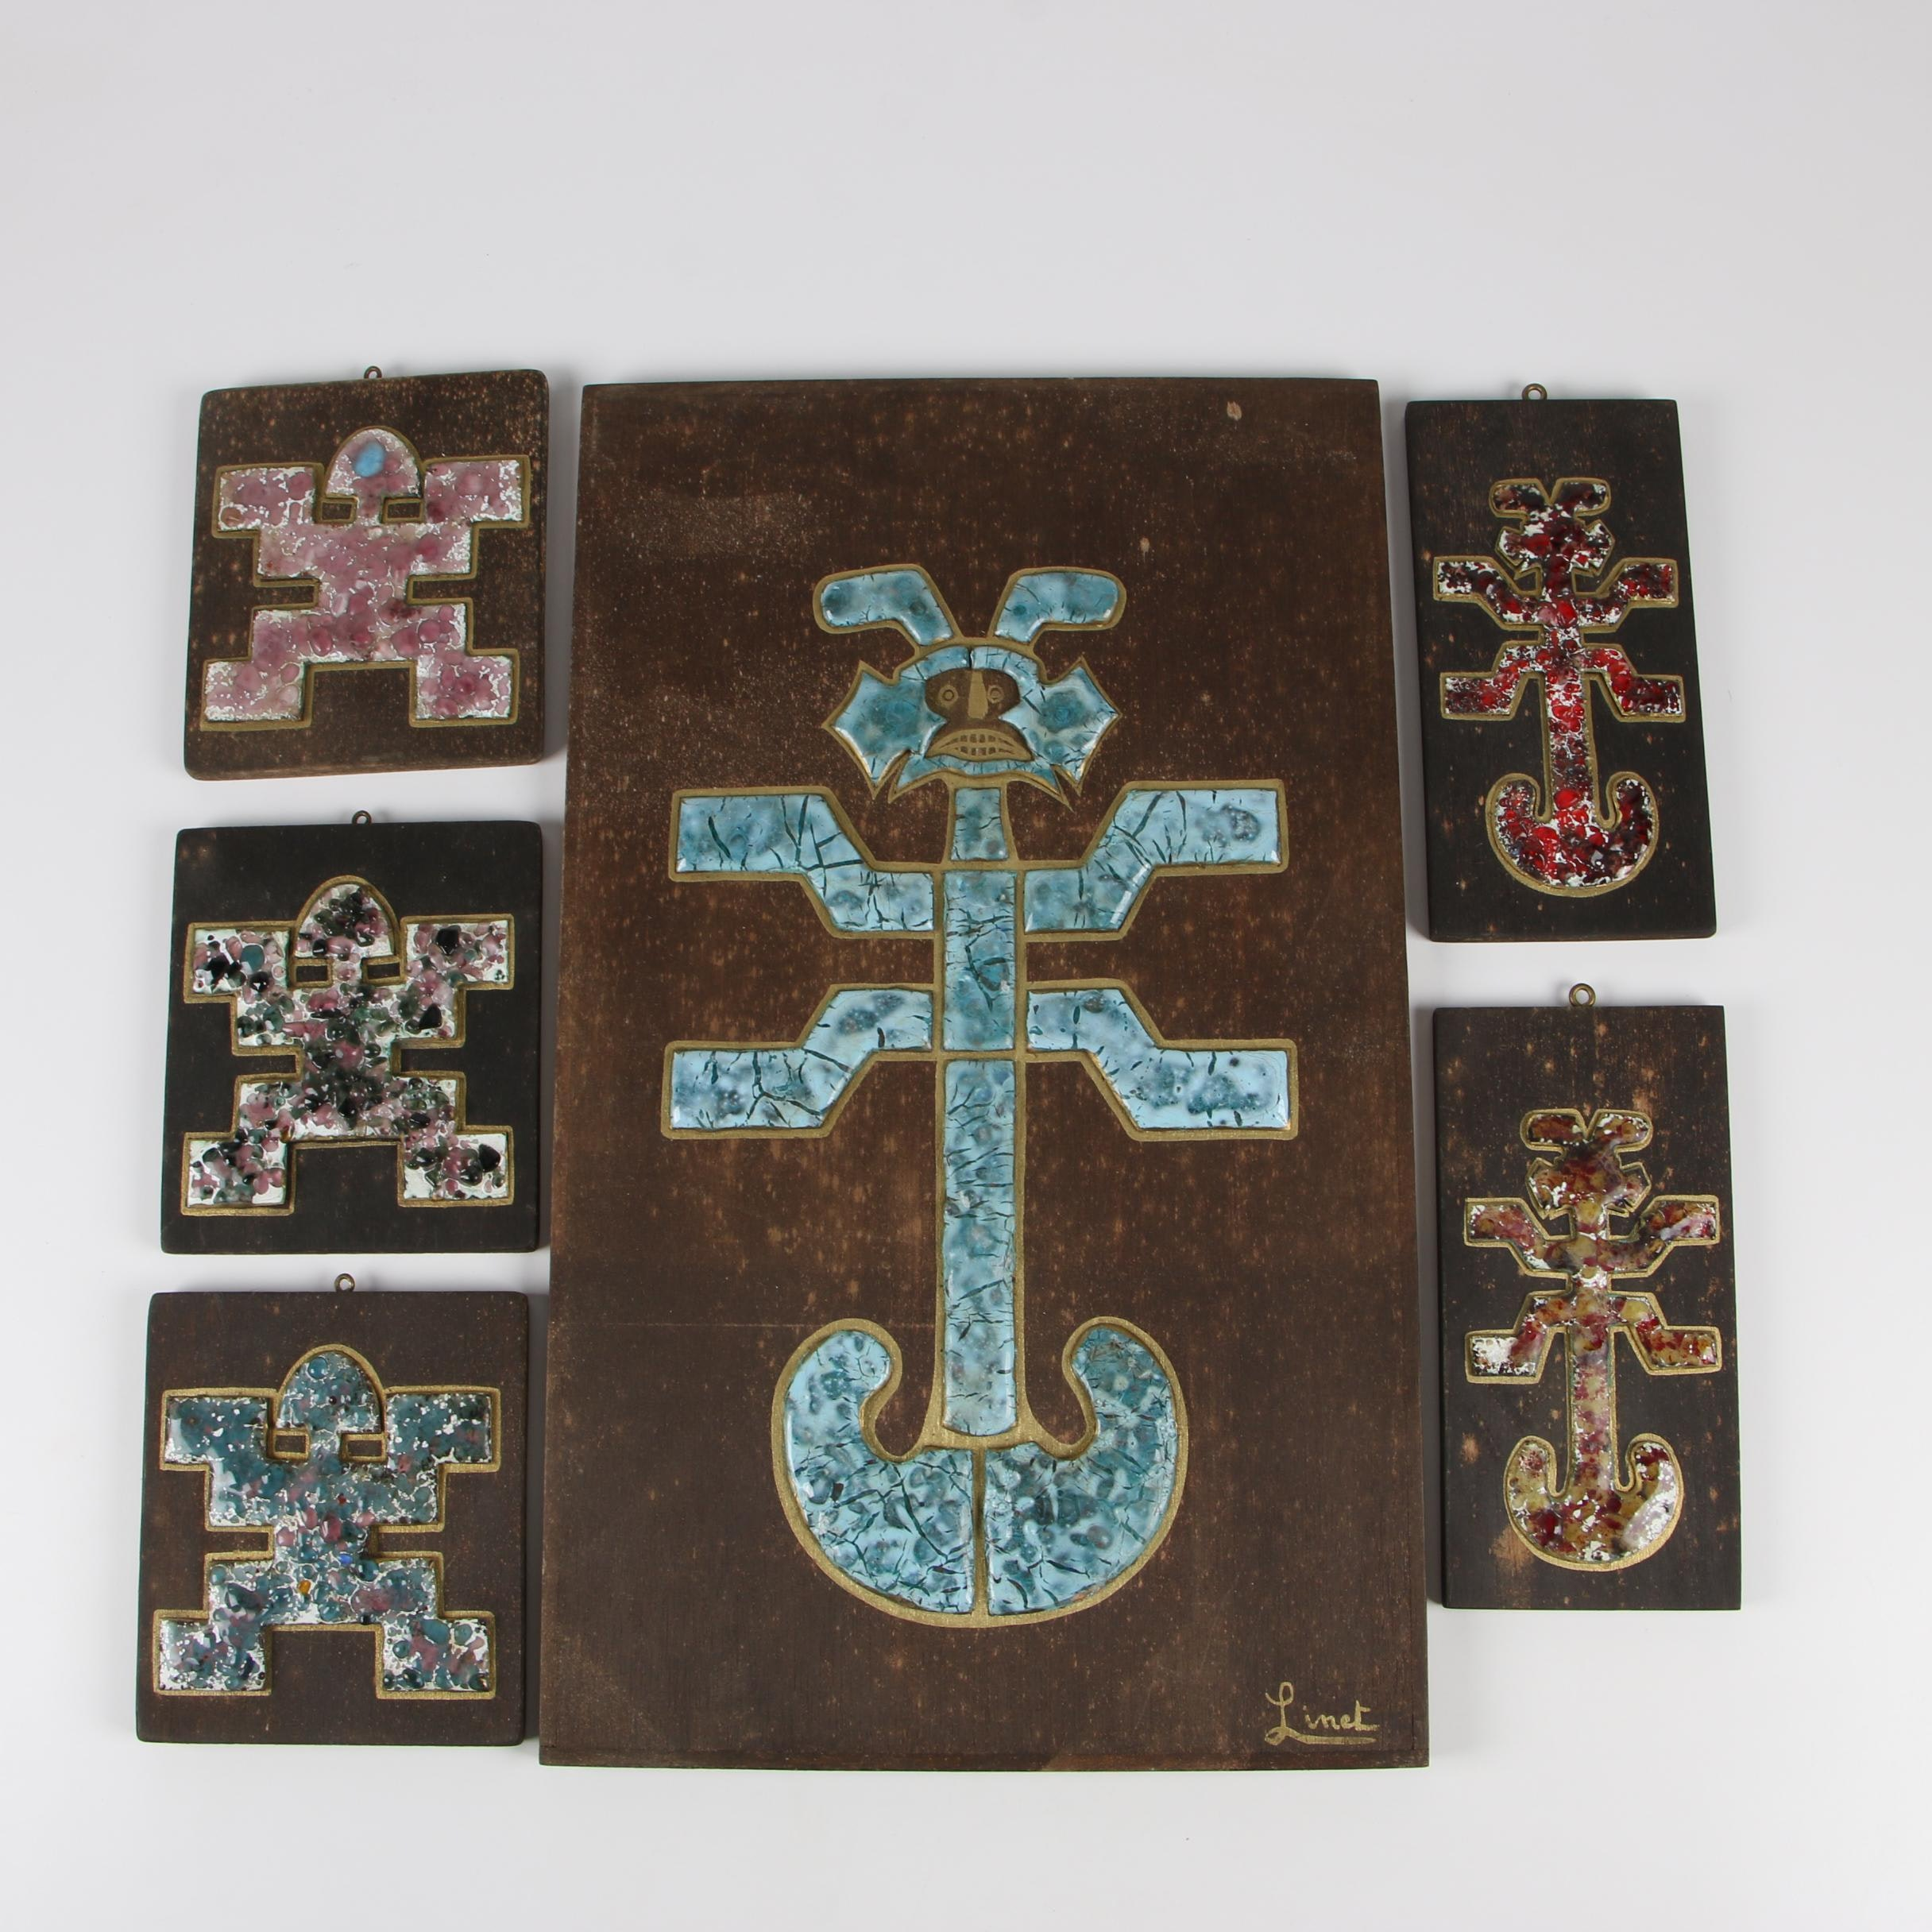 Colombian Enameled Pictorial Images on Wooden Panels